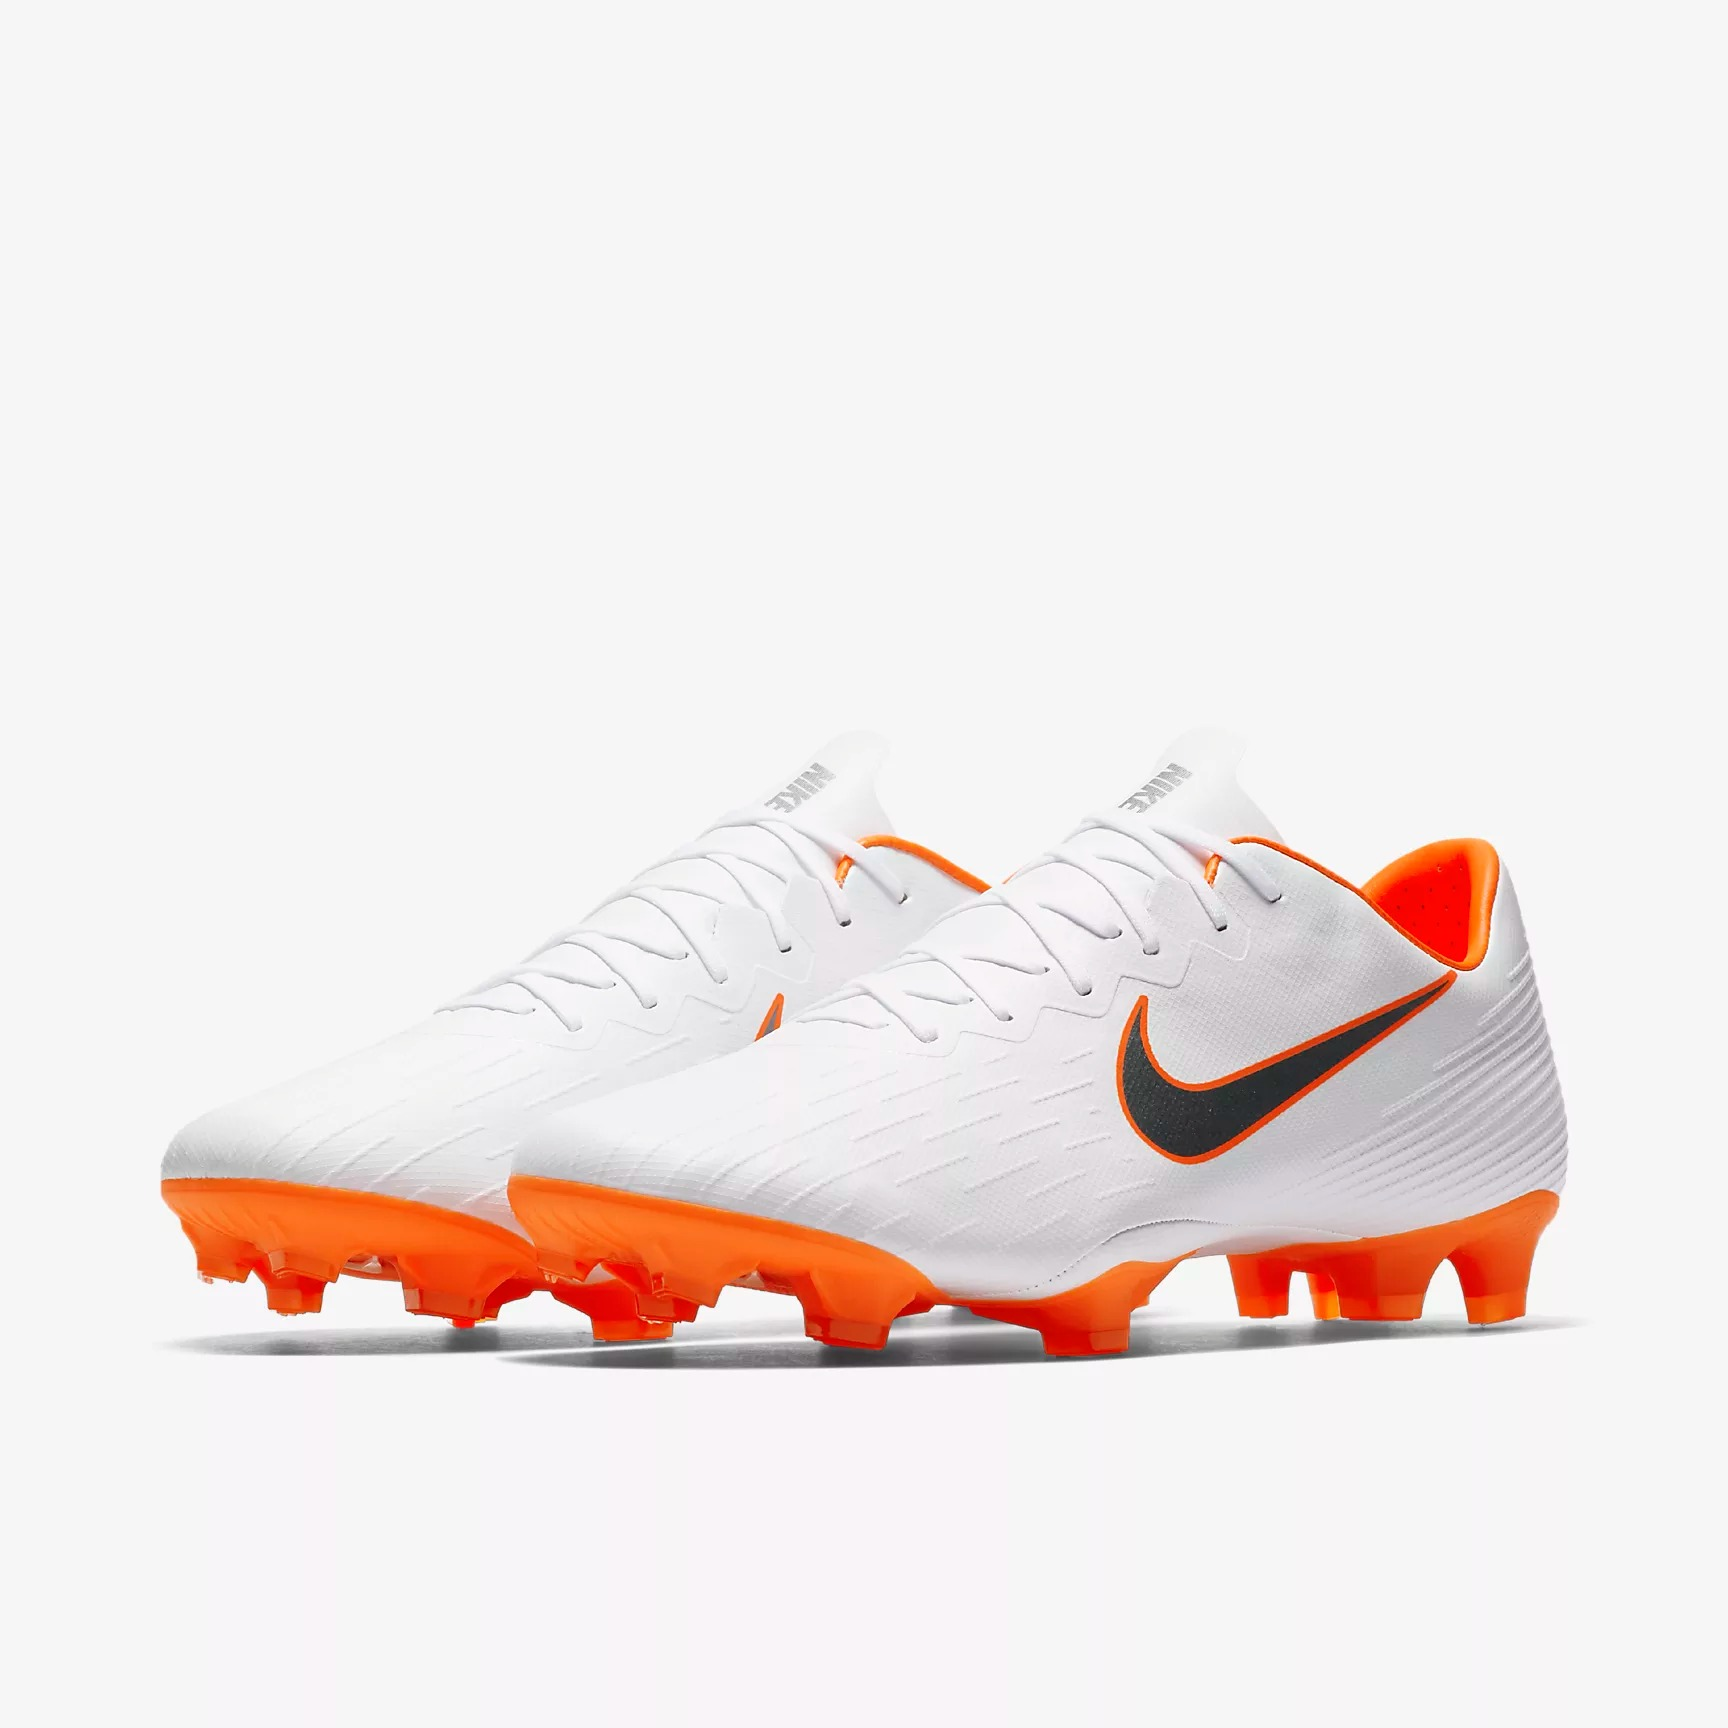 634dc3c11 Nike Mercurial Vapor XII Pro FG Soccer Cleats - Soccer Cleats Nike Football  Boots - Superfanas.lt